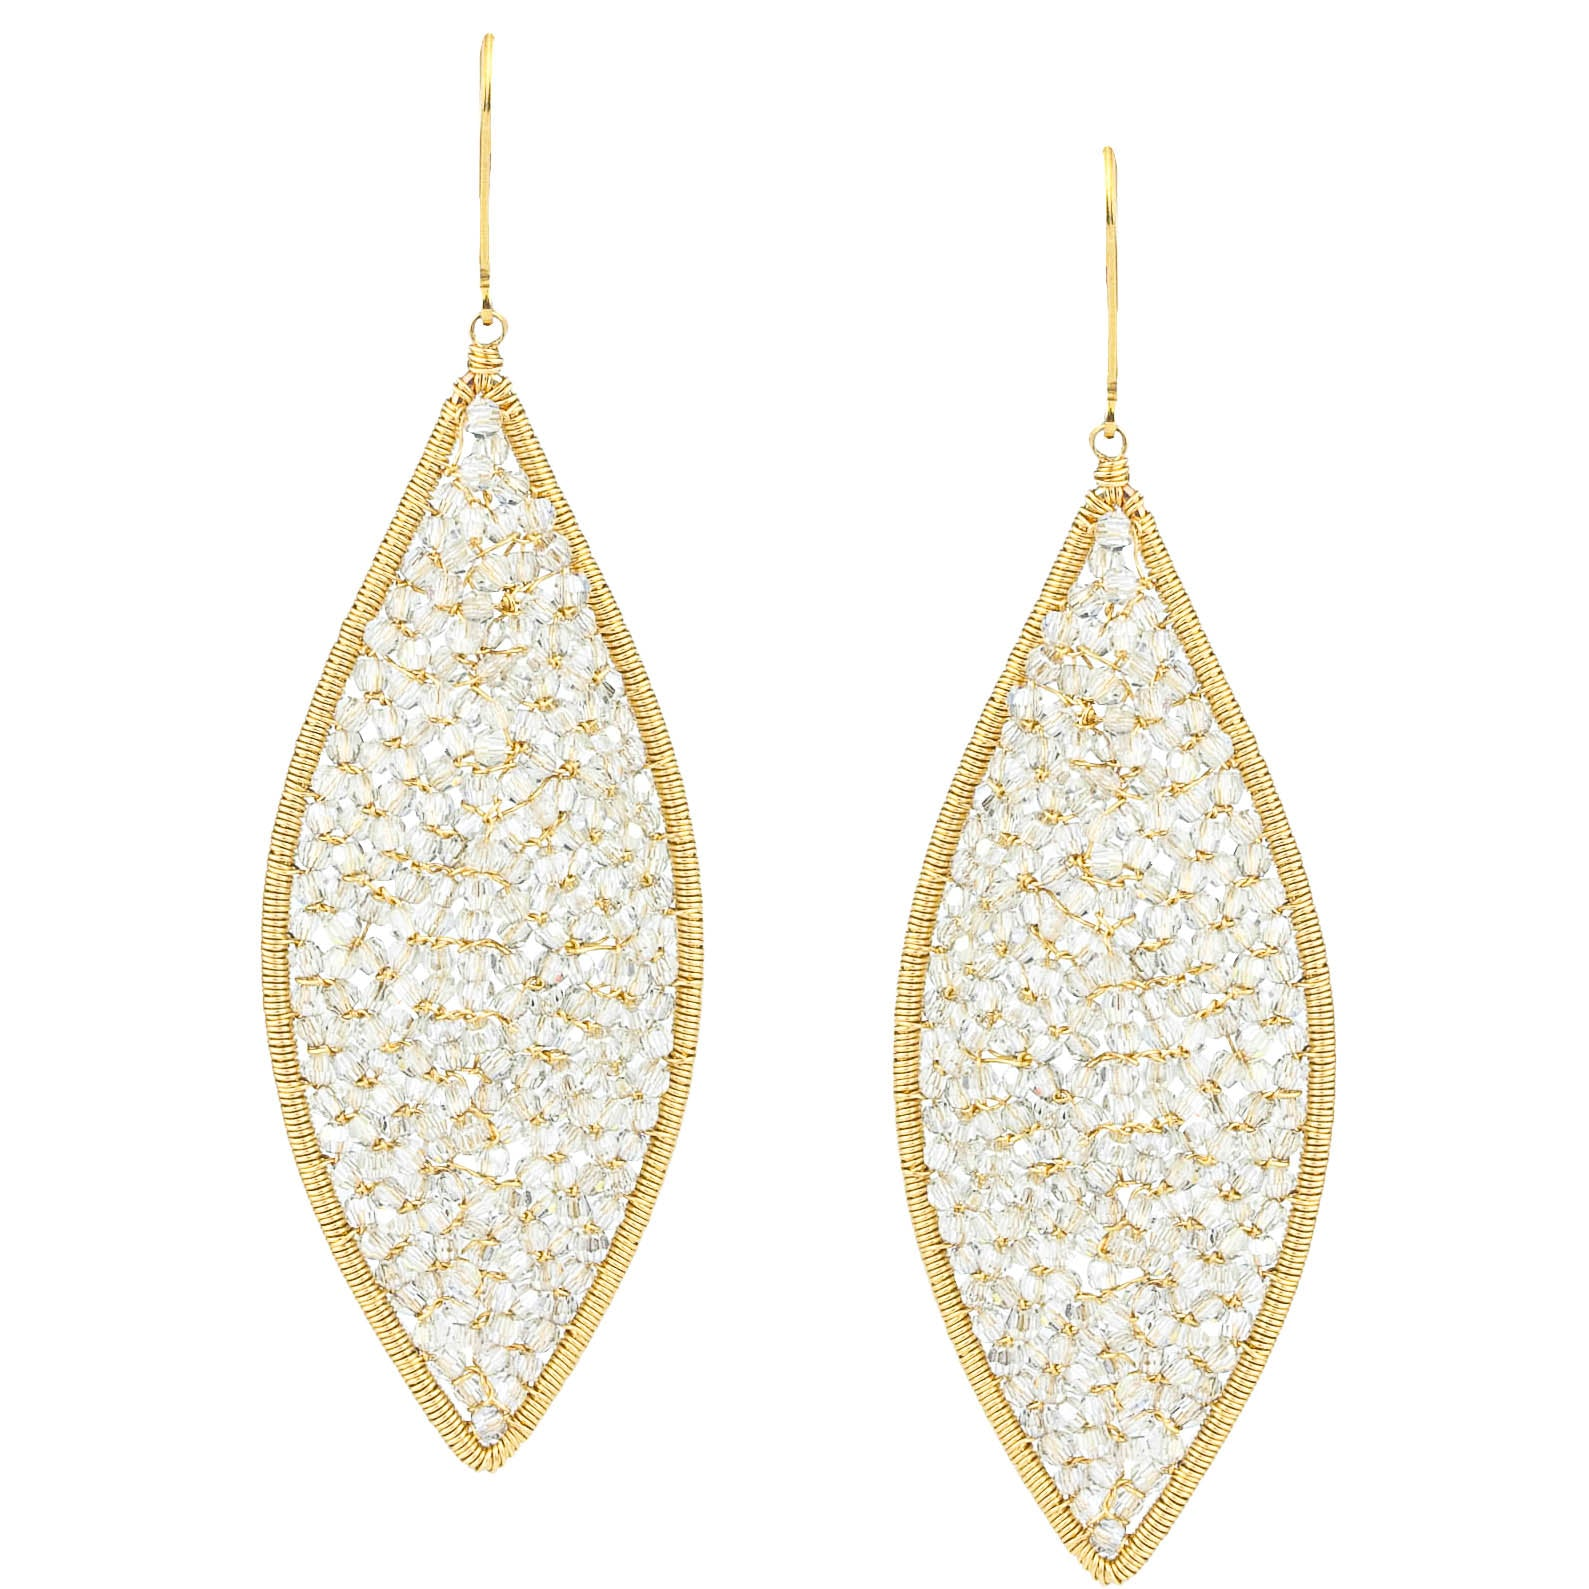 Marquis Mosaic Earrings